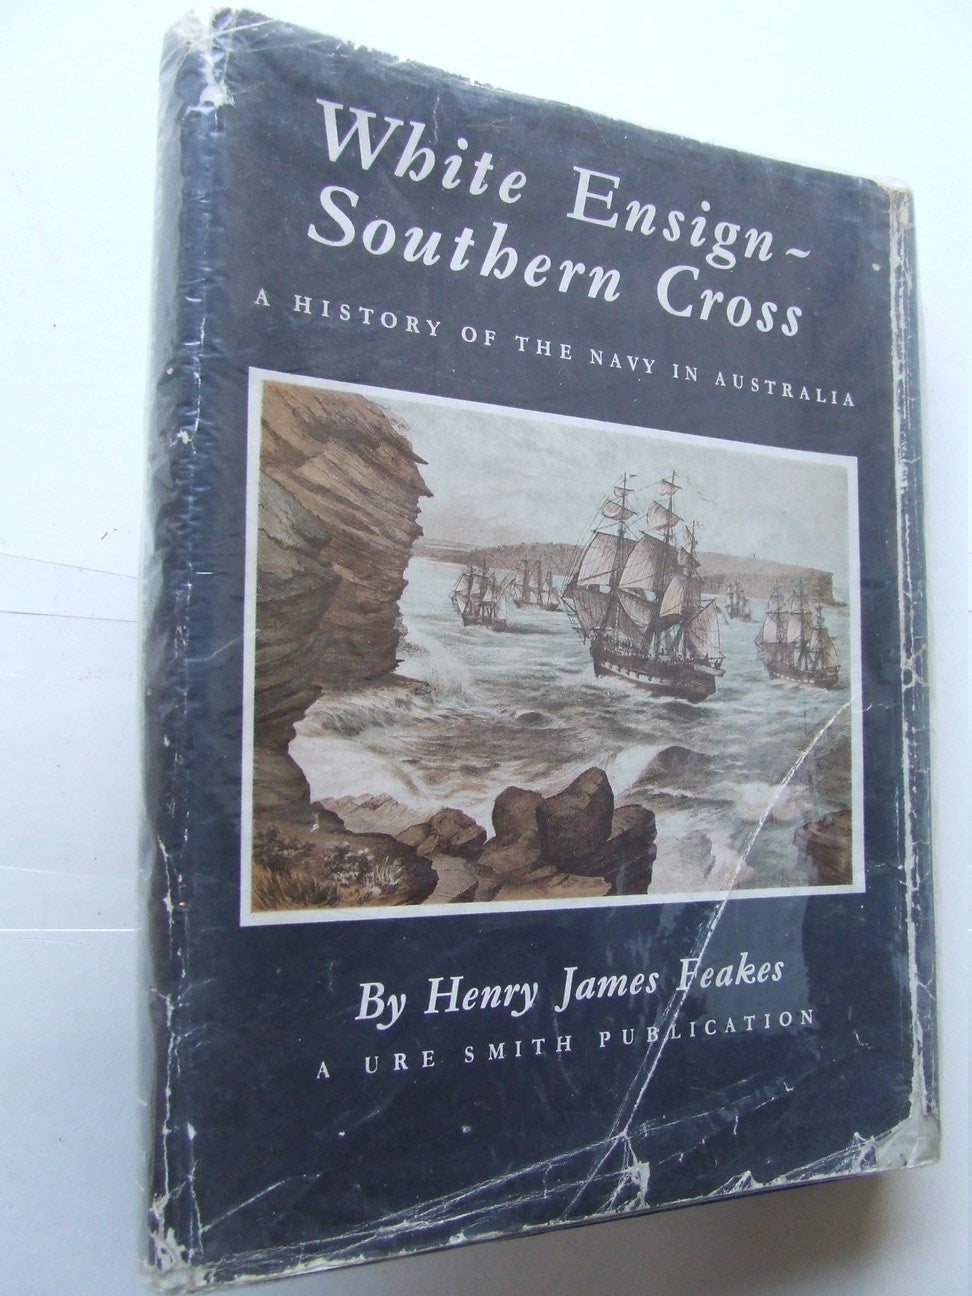 White Ensign - Southern Cross, a story of the King's ships of Australia's navy